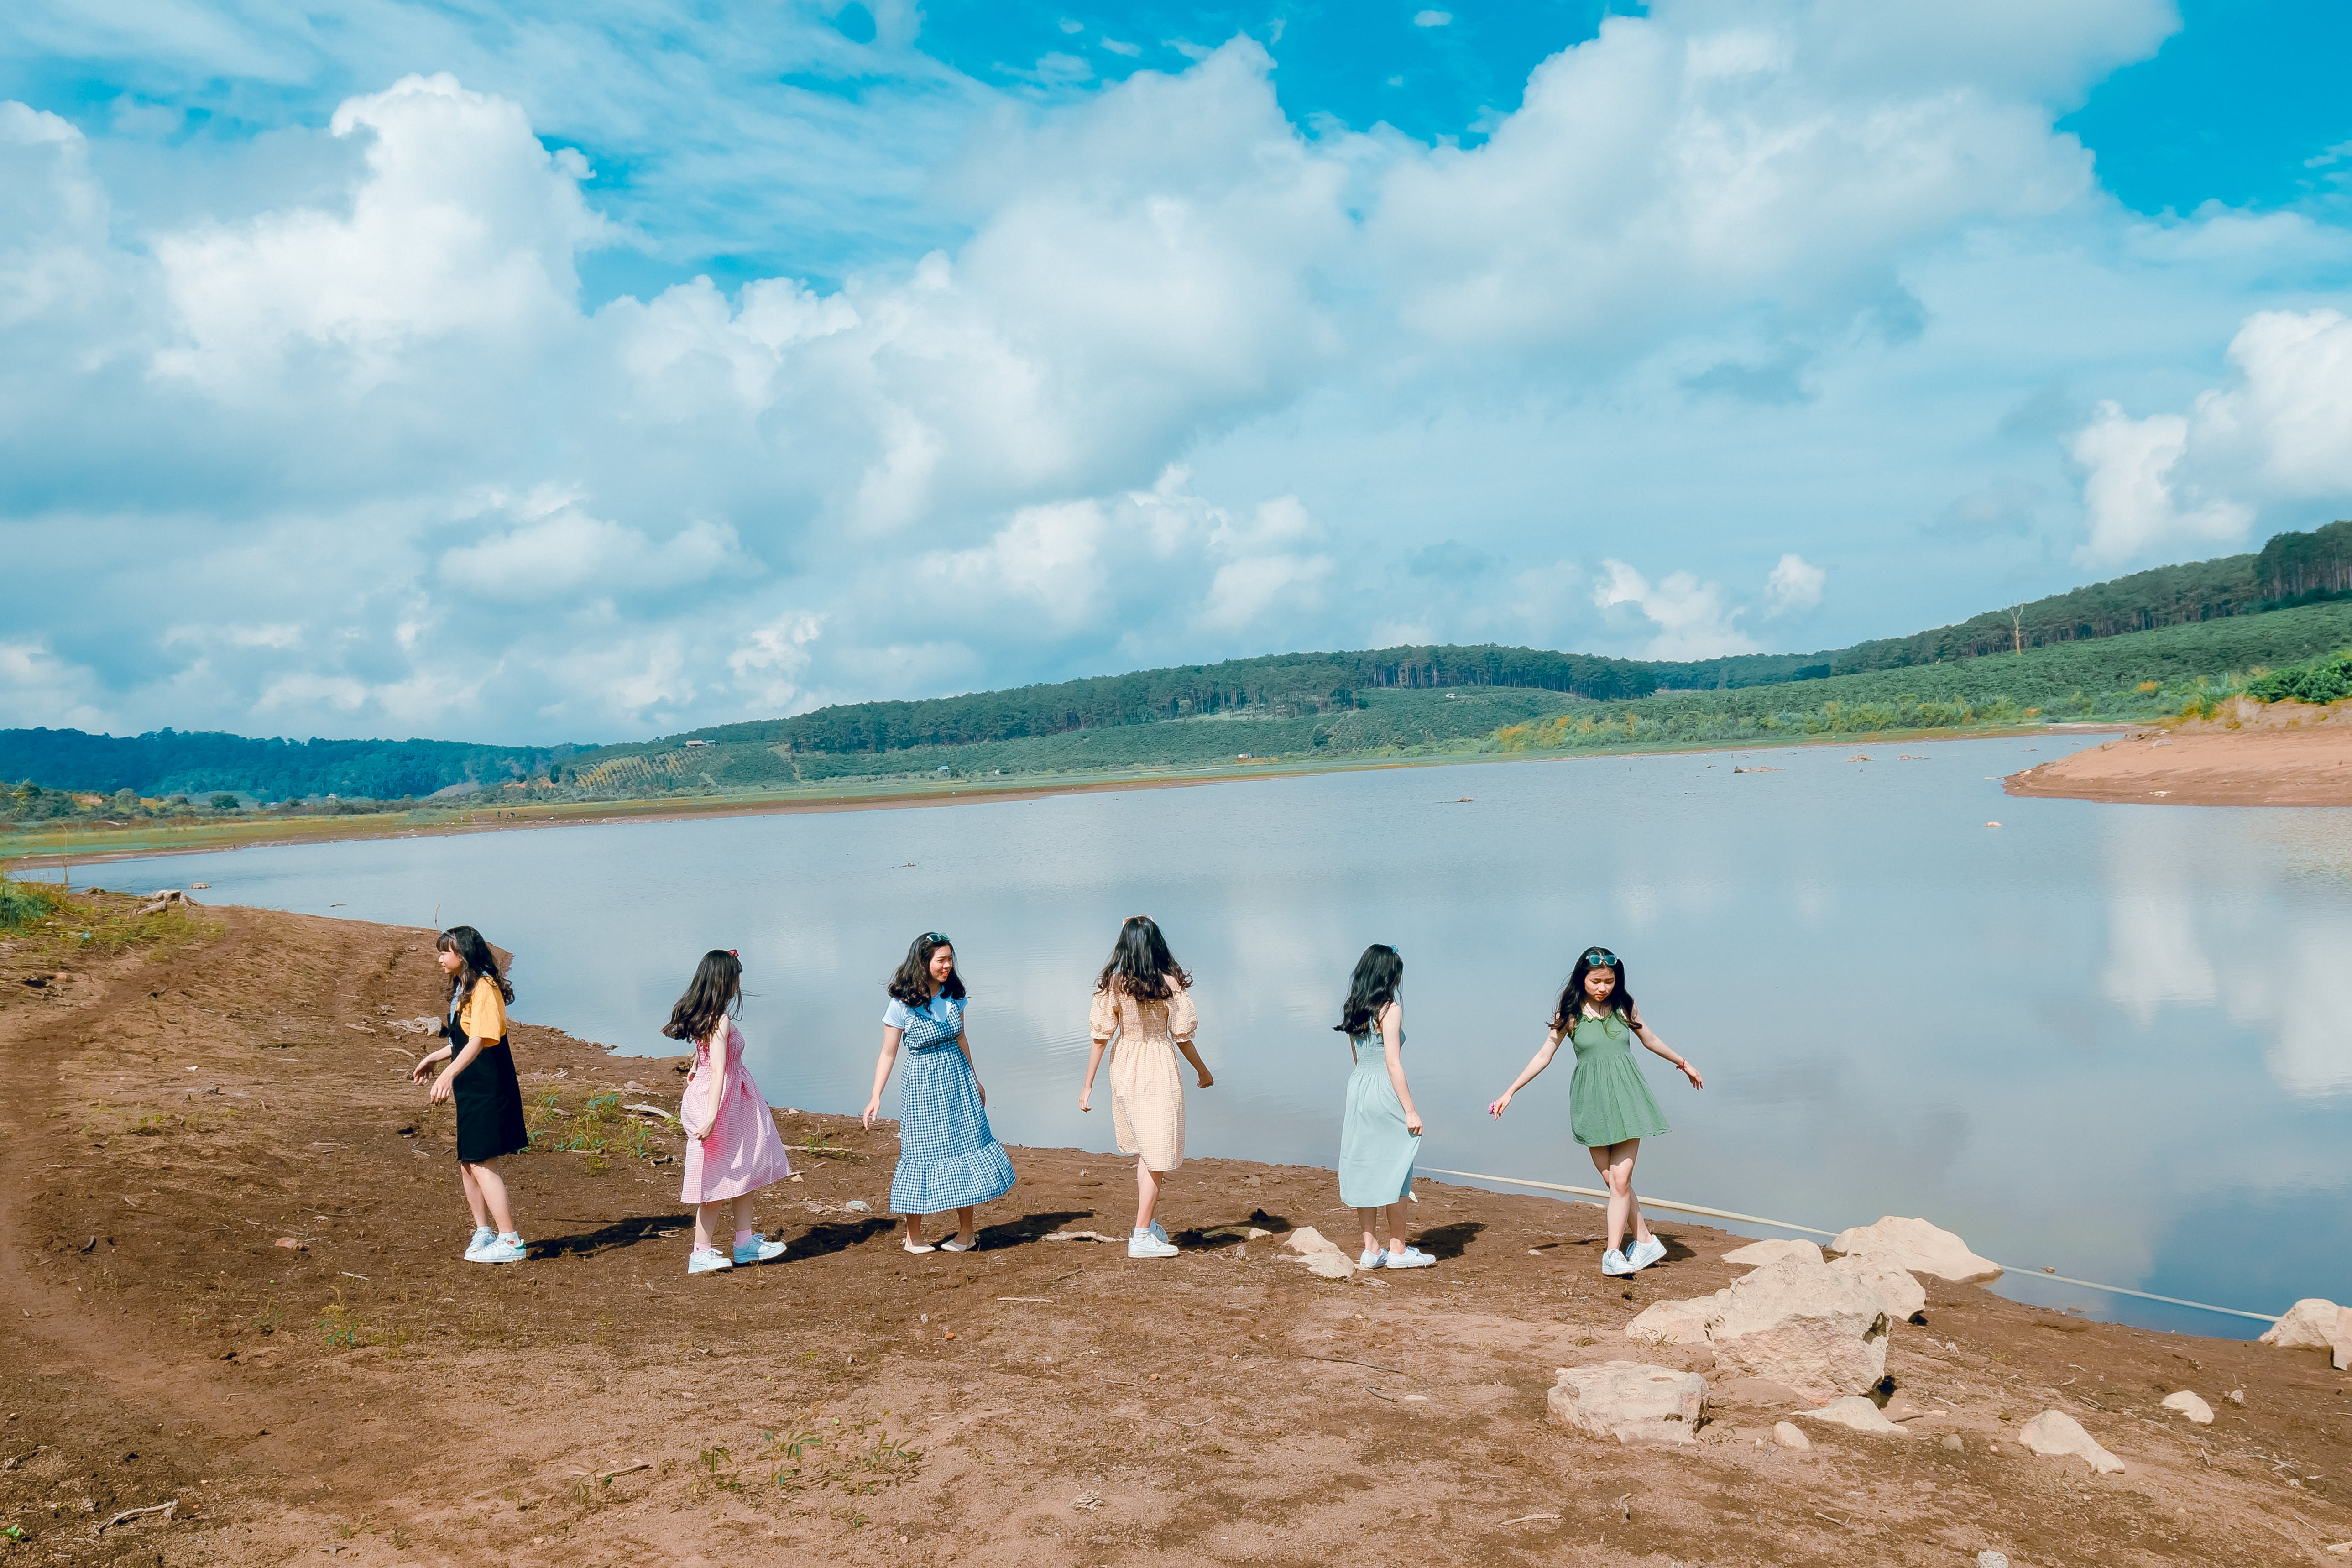 Six Girl Standing Beside Body of Water